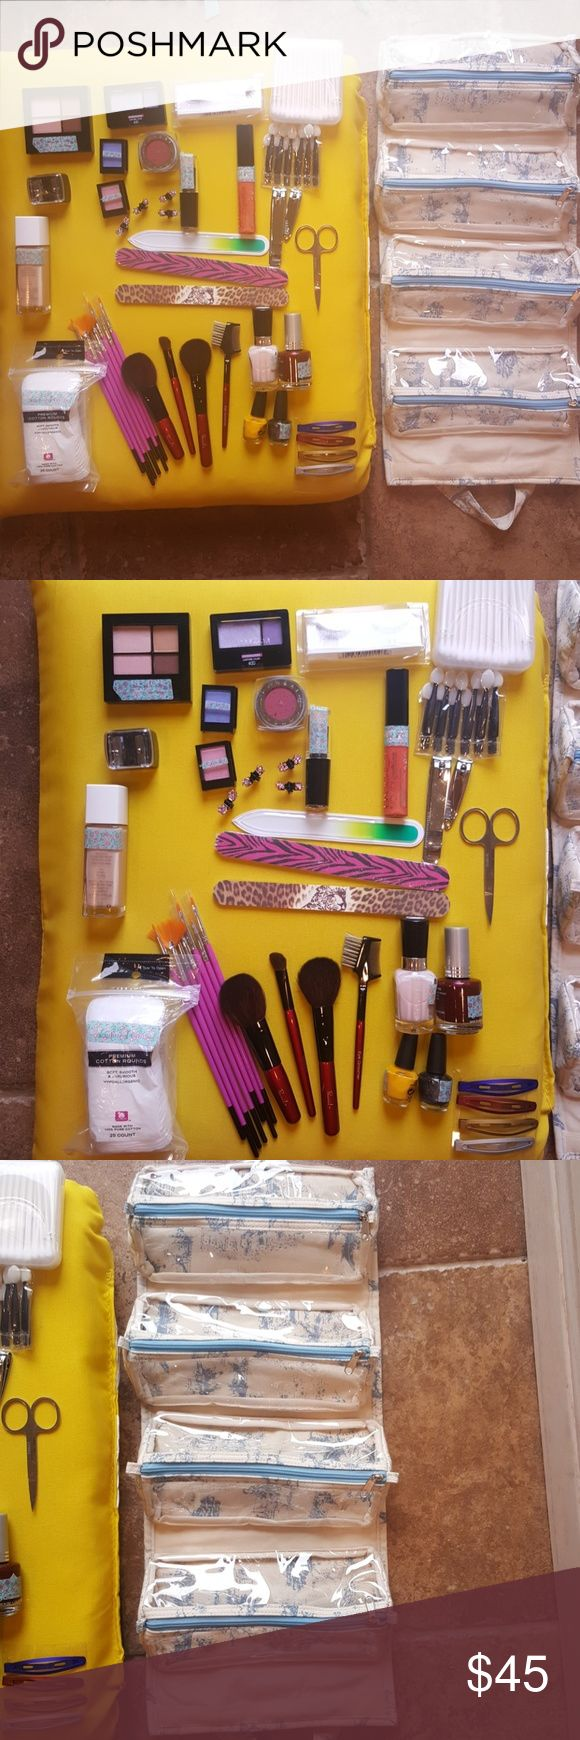 NWT AMAZING BEAUTY deal!! Hanging cosmetics holder PACKED with  brand new, never been used,cosmetics:  * Hanging cosmetics bag/removable compartments * 11 makeup brushes *  8 hair clips * 1 Revlon Foundation * 4 nail polishes *2 nail clippers, cuticle scissors, 3 nail files *bag of cotton rounds, box of Q tips, * 12 eye shadow applicators * 1 set black eyelashes *  eye/lip pencil sharpener * 8 eye-shadows * 1 Loreal eye shimmer * 2 Lip shines  These were purchased as background prop for…